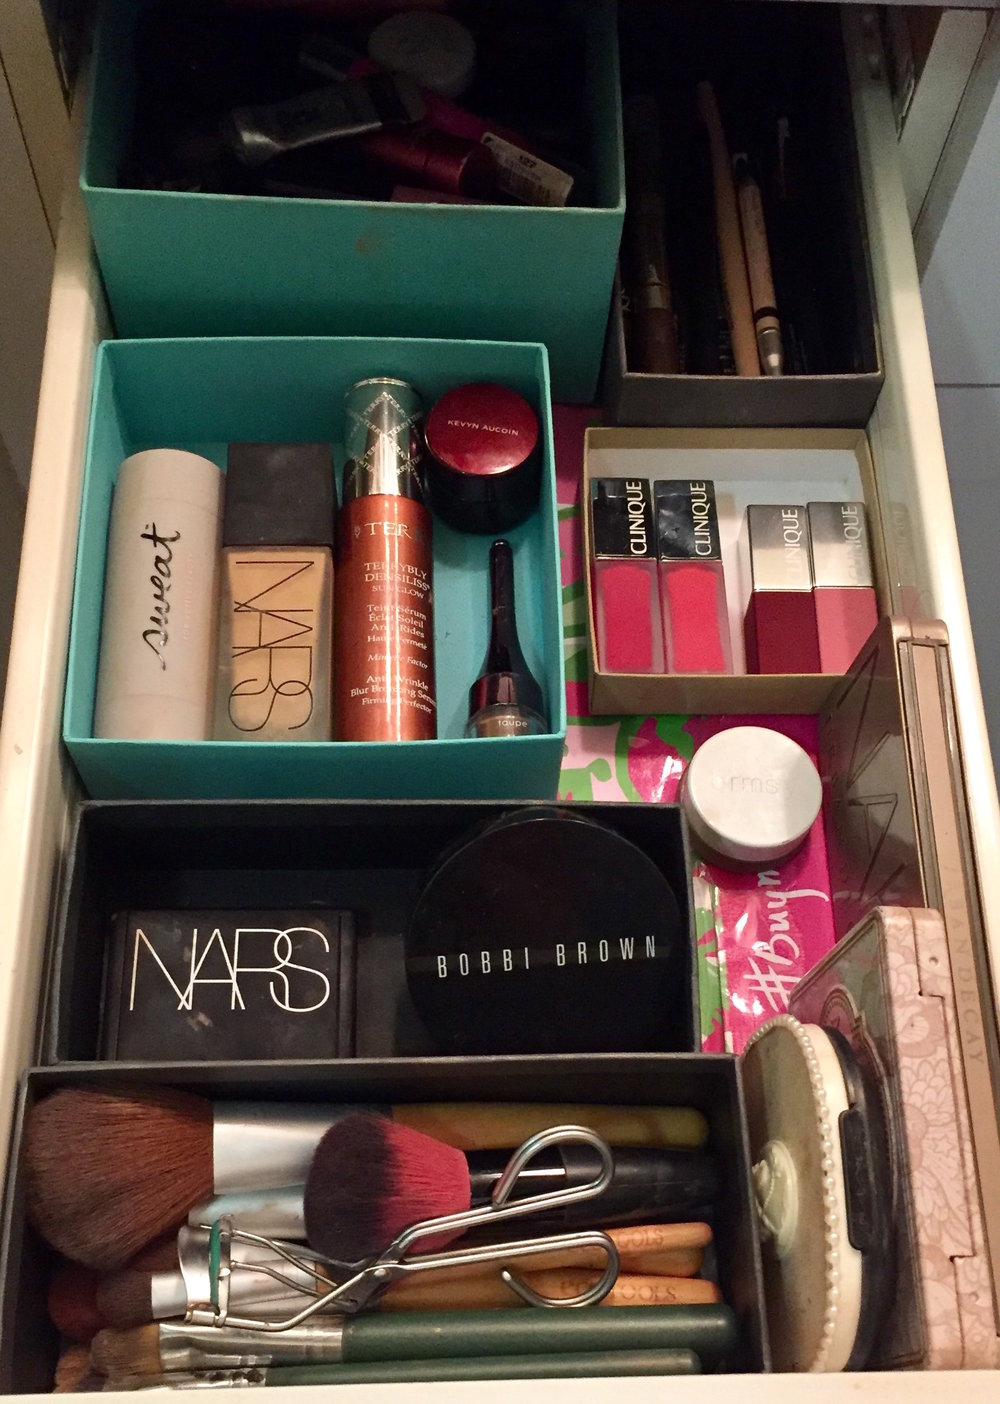 This my makeup drawer. It's not perfect, but I think it's pretty darn good.